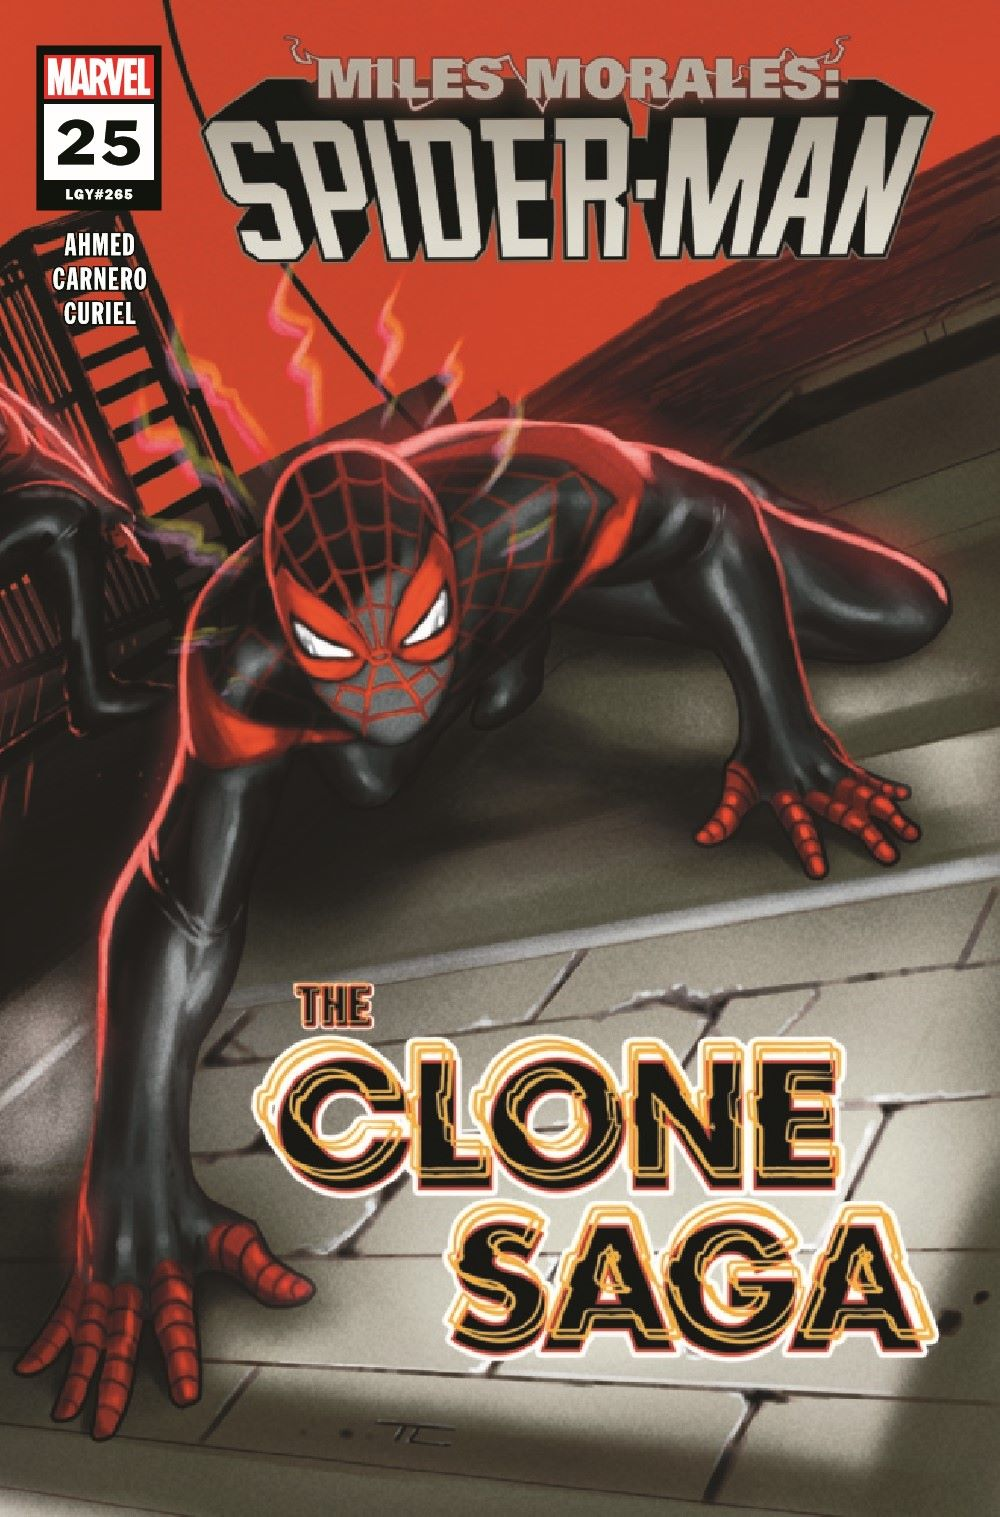 MMSM2018025_Preview-1 ComicList Previews: MILES MORALES SPIDER-MAN #25